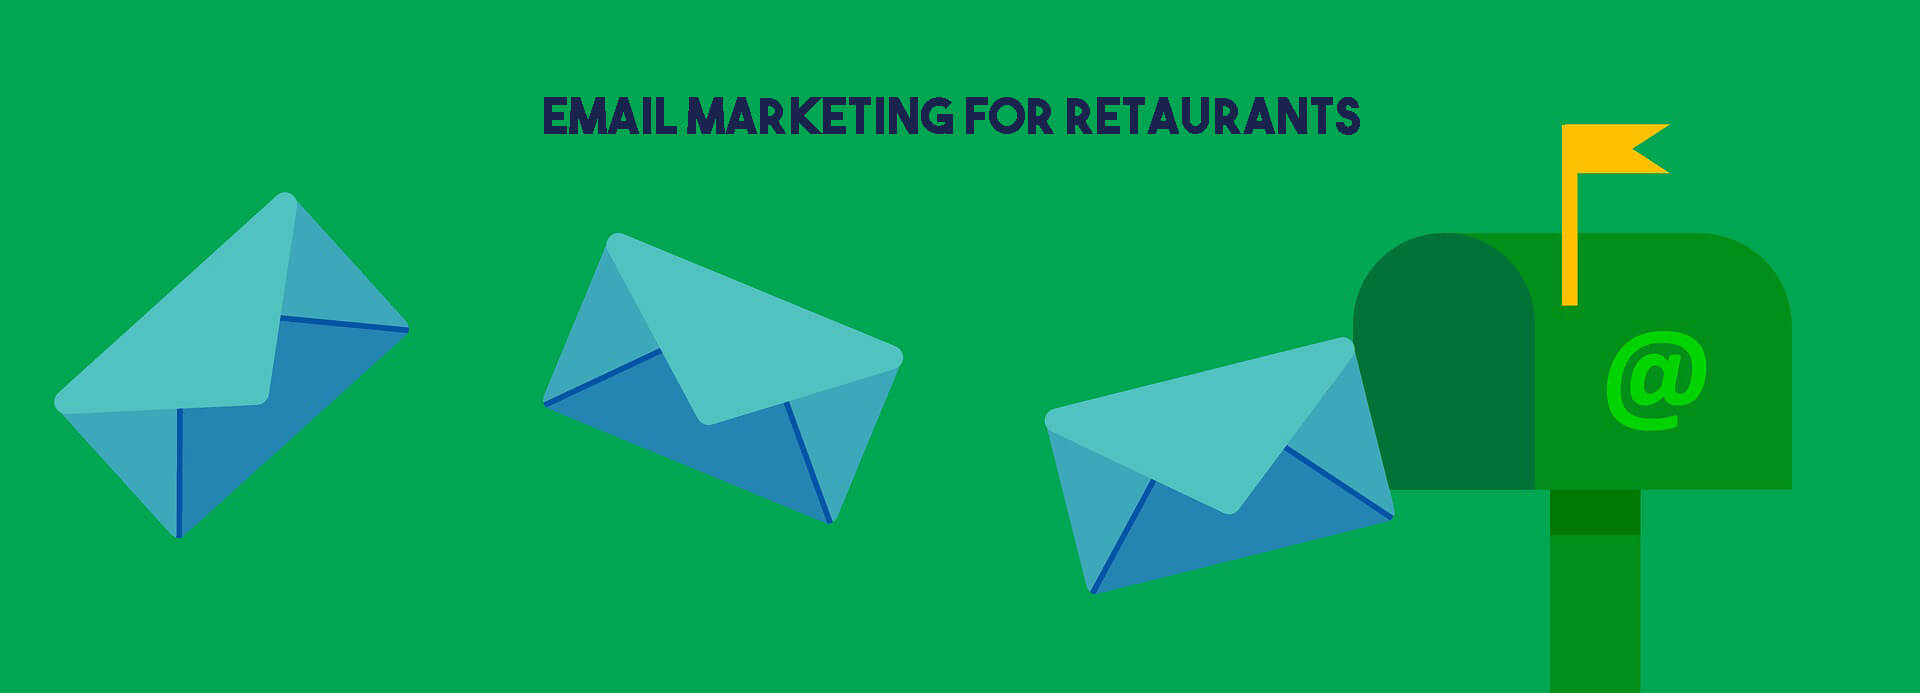 restaurant industry email marketing